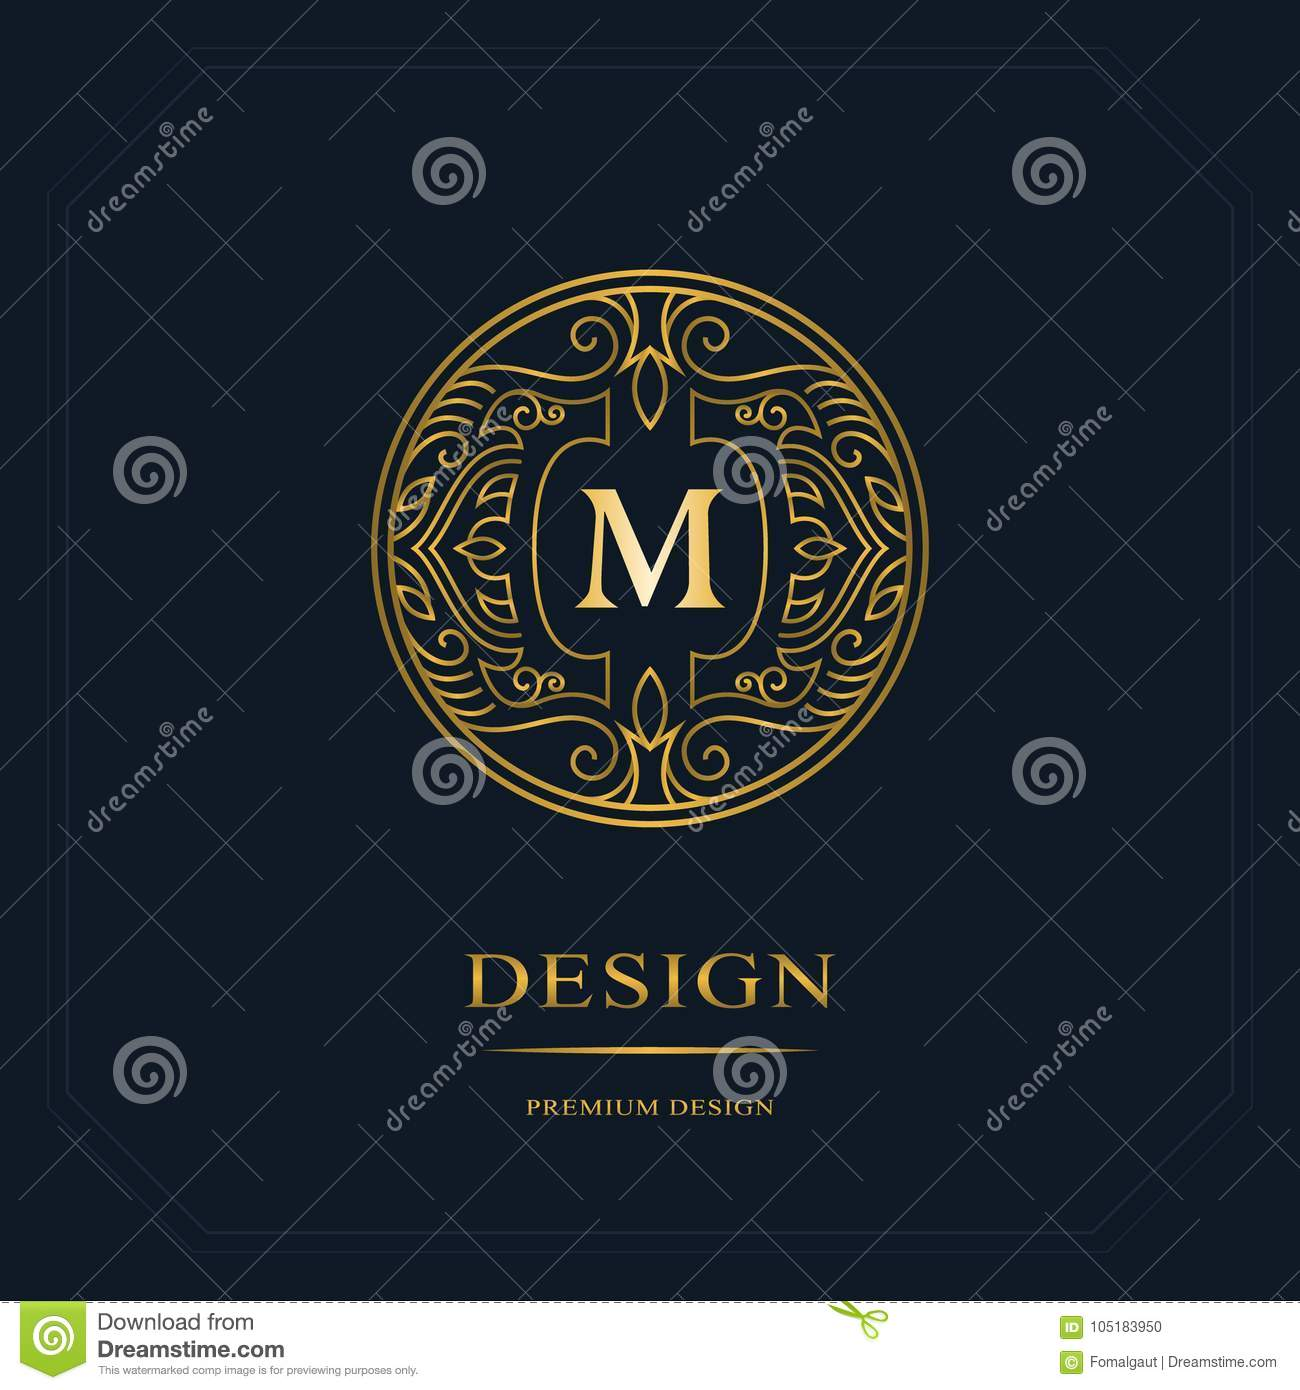 Gold line graphics monogram elegant art logo design letter m elegant art logo design letter m graceful template business sign identity for restaurant royalty boutique cafe hotel heraldic jewelry fashion flashek Image collections